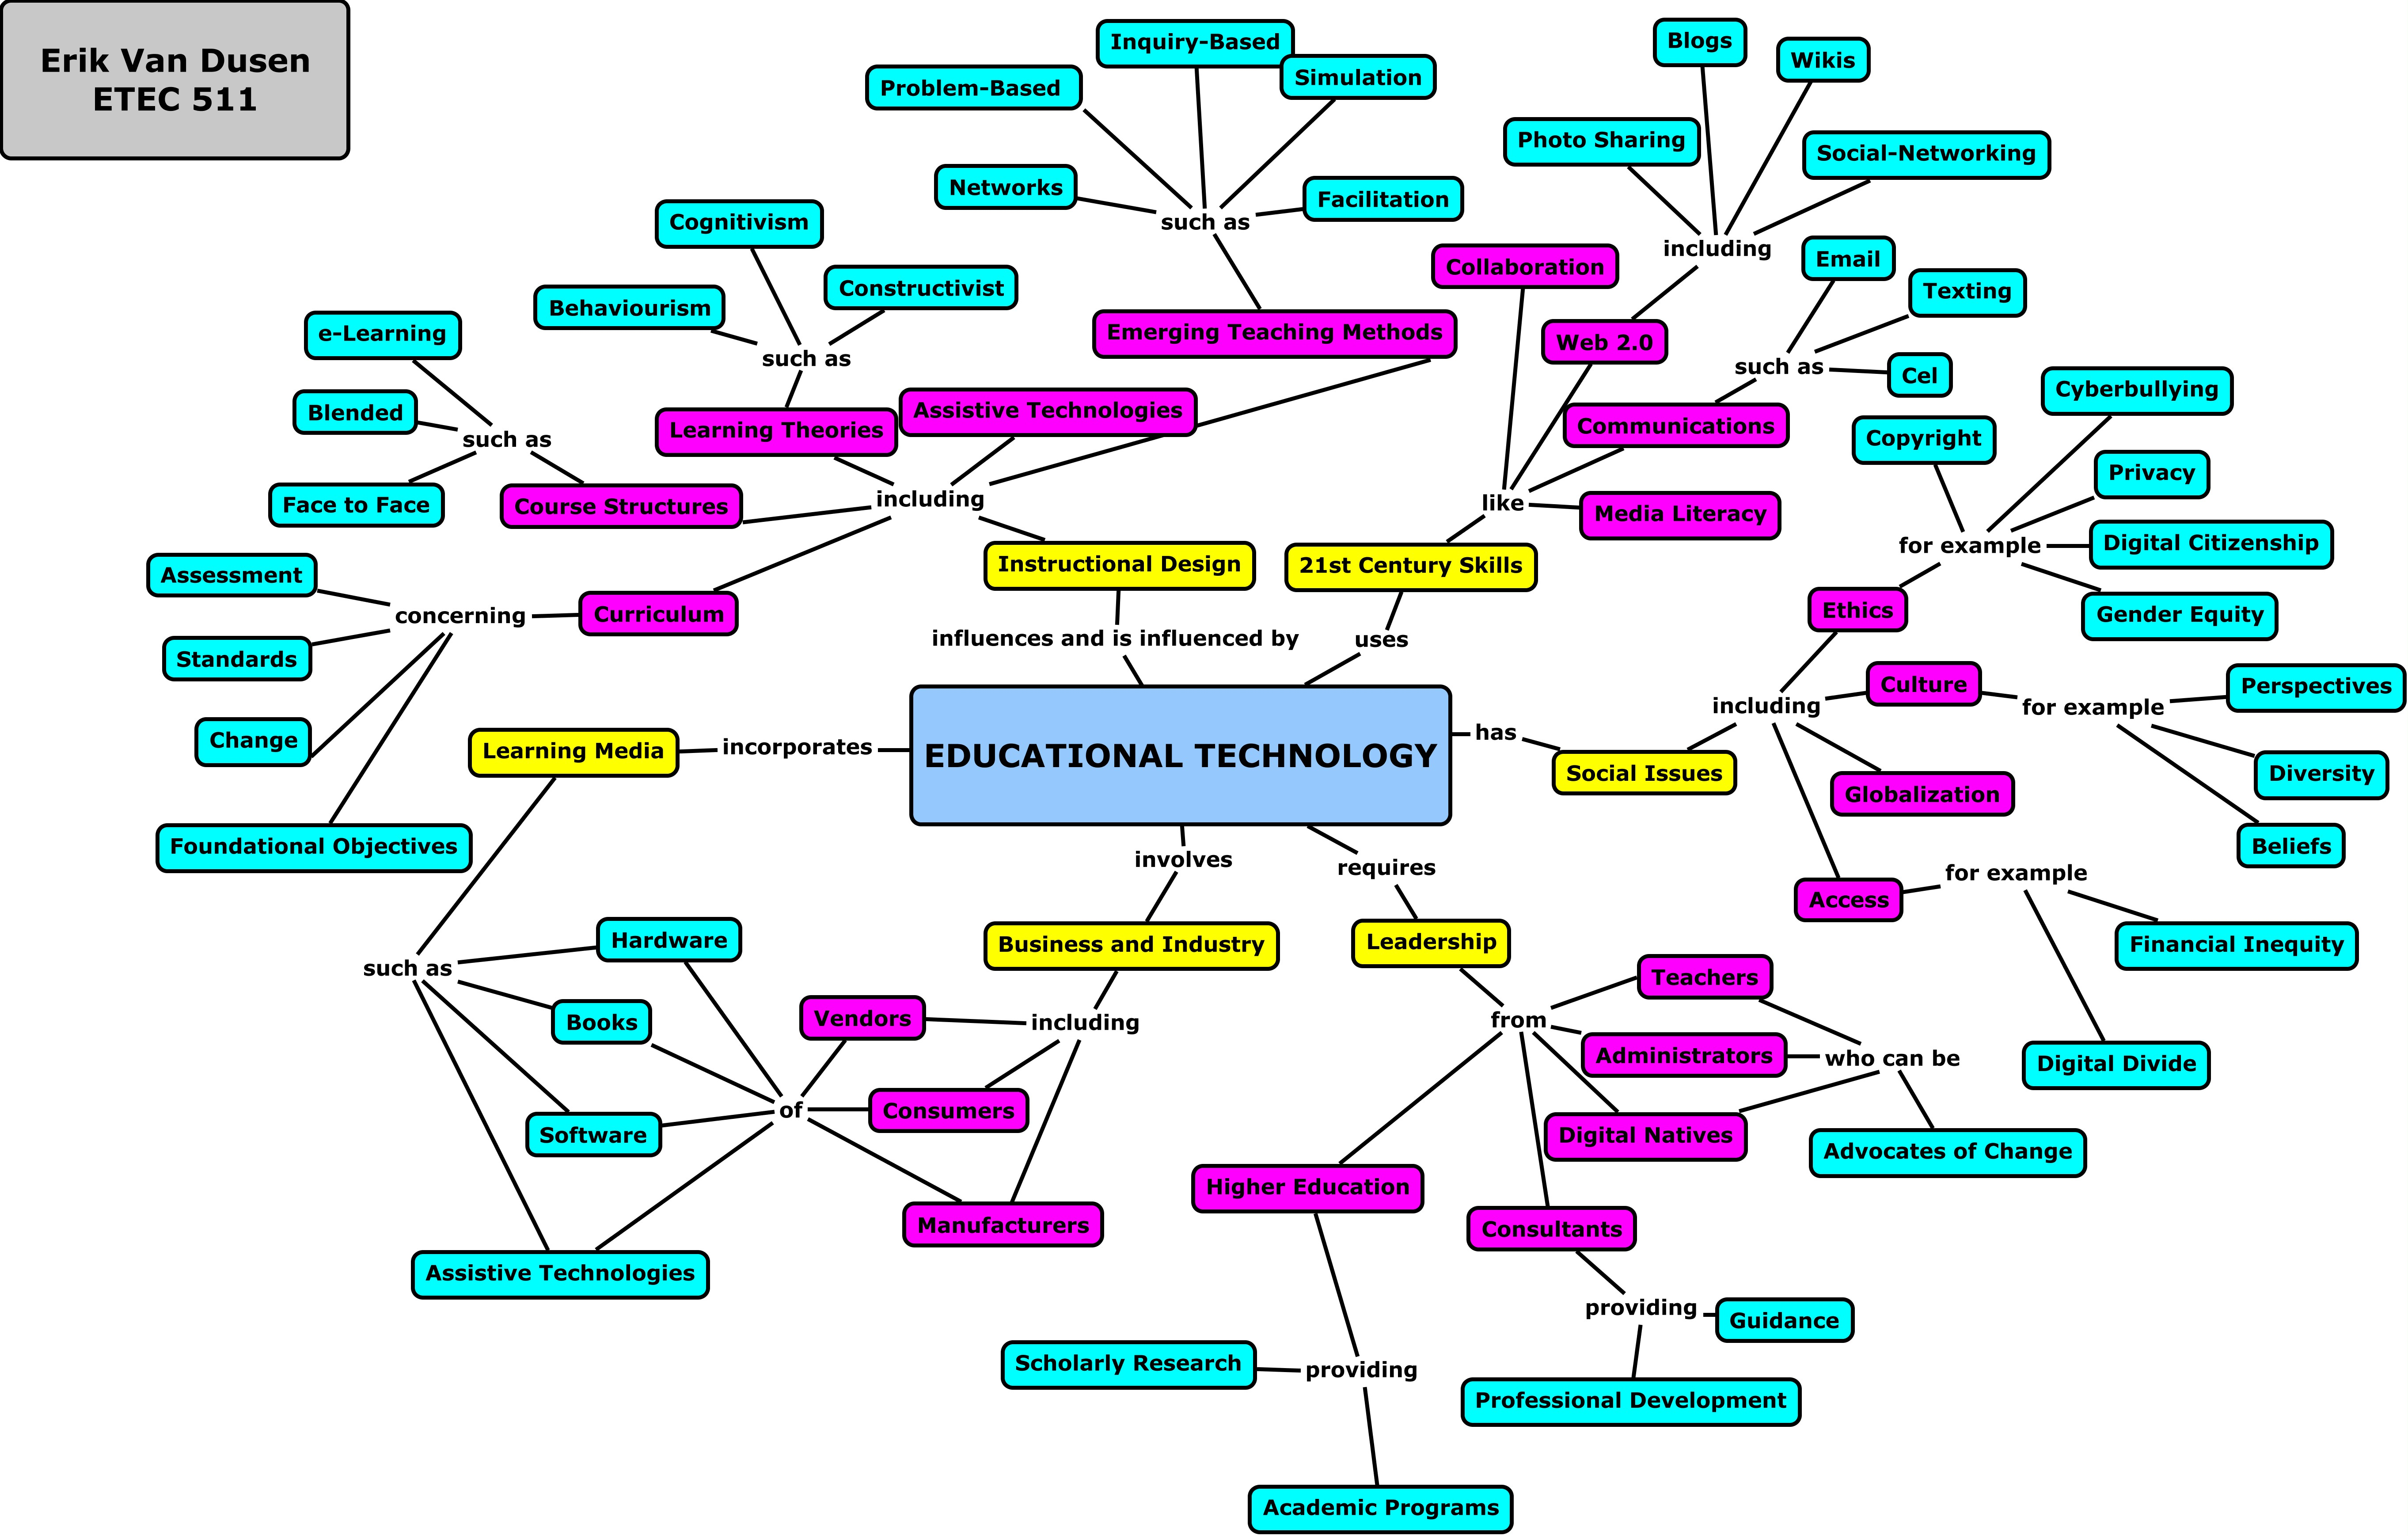 Technology Concept Map Mapping Educational Technology